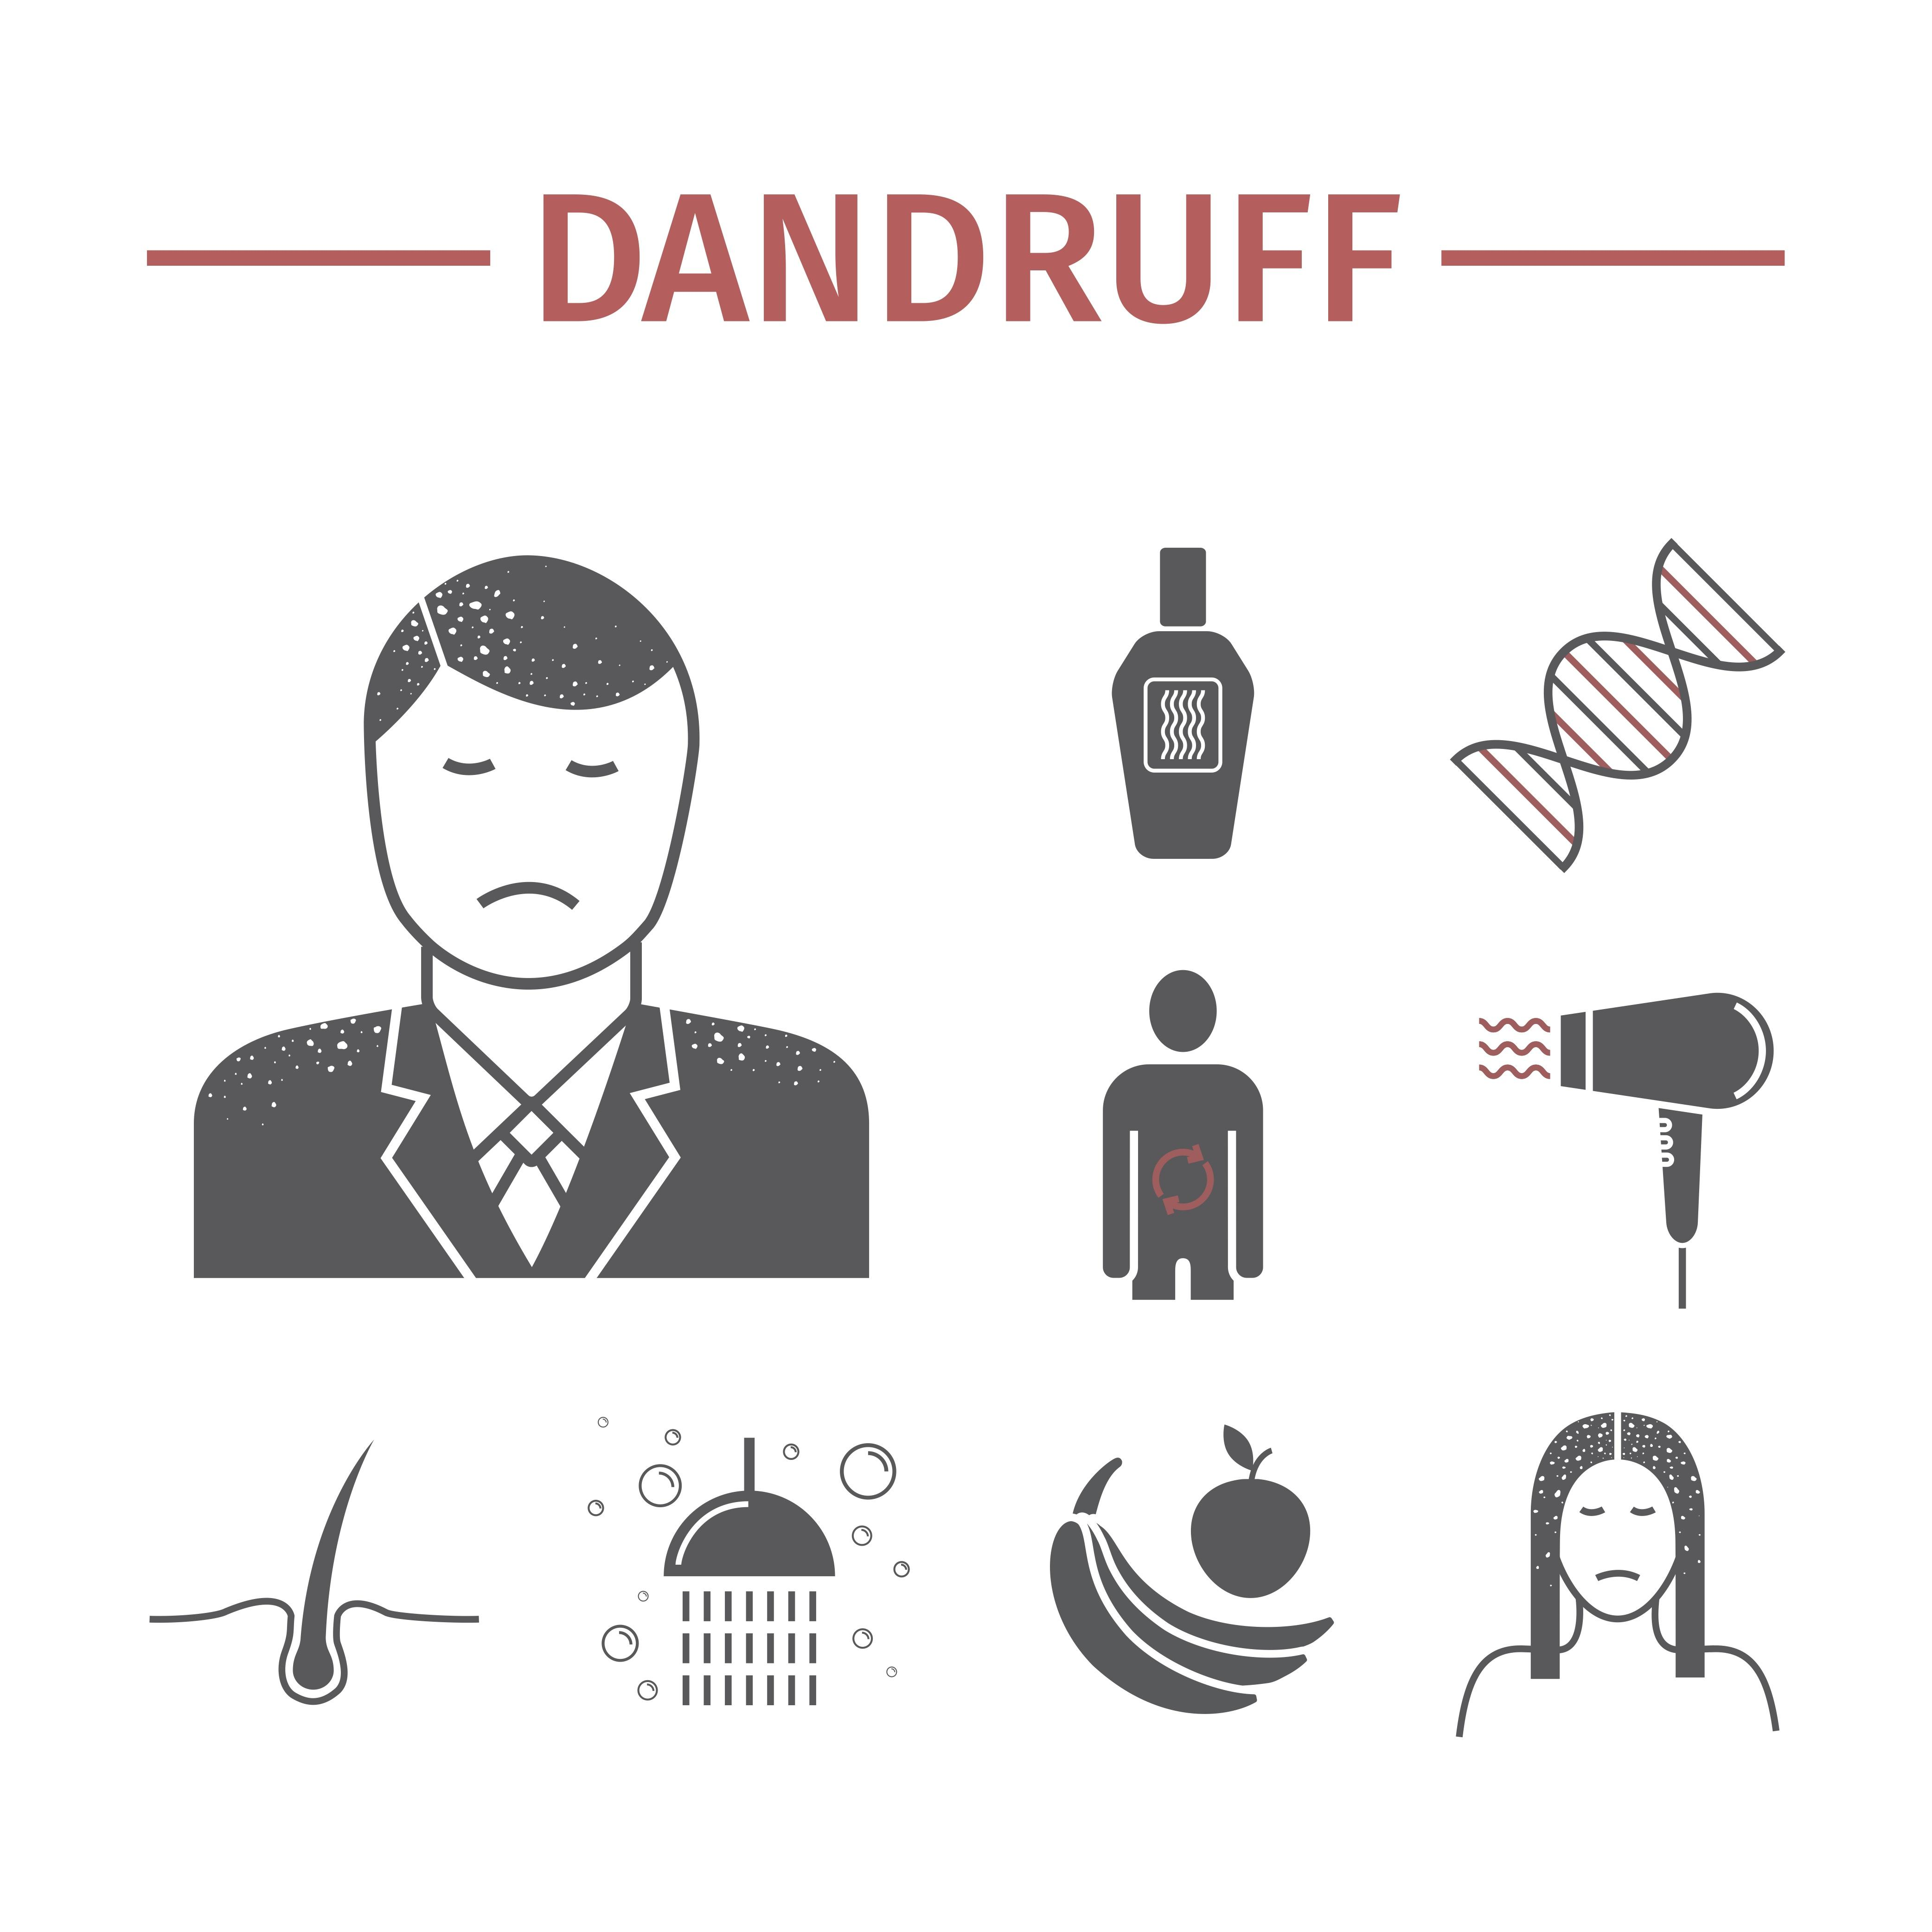 causes-of-dandruff-how-to-get-rid-of-dandruff-man-for-himself